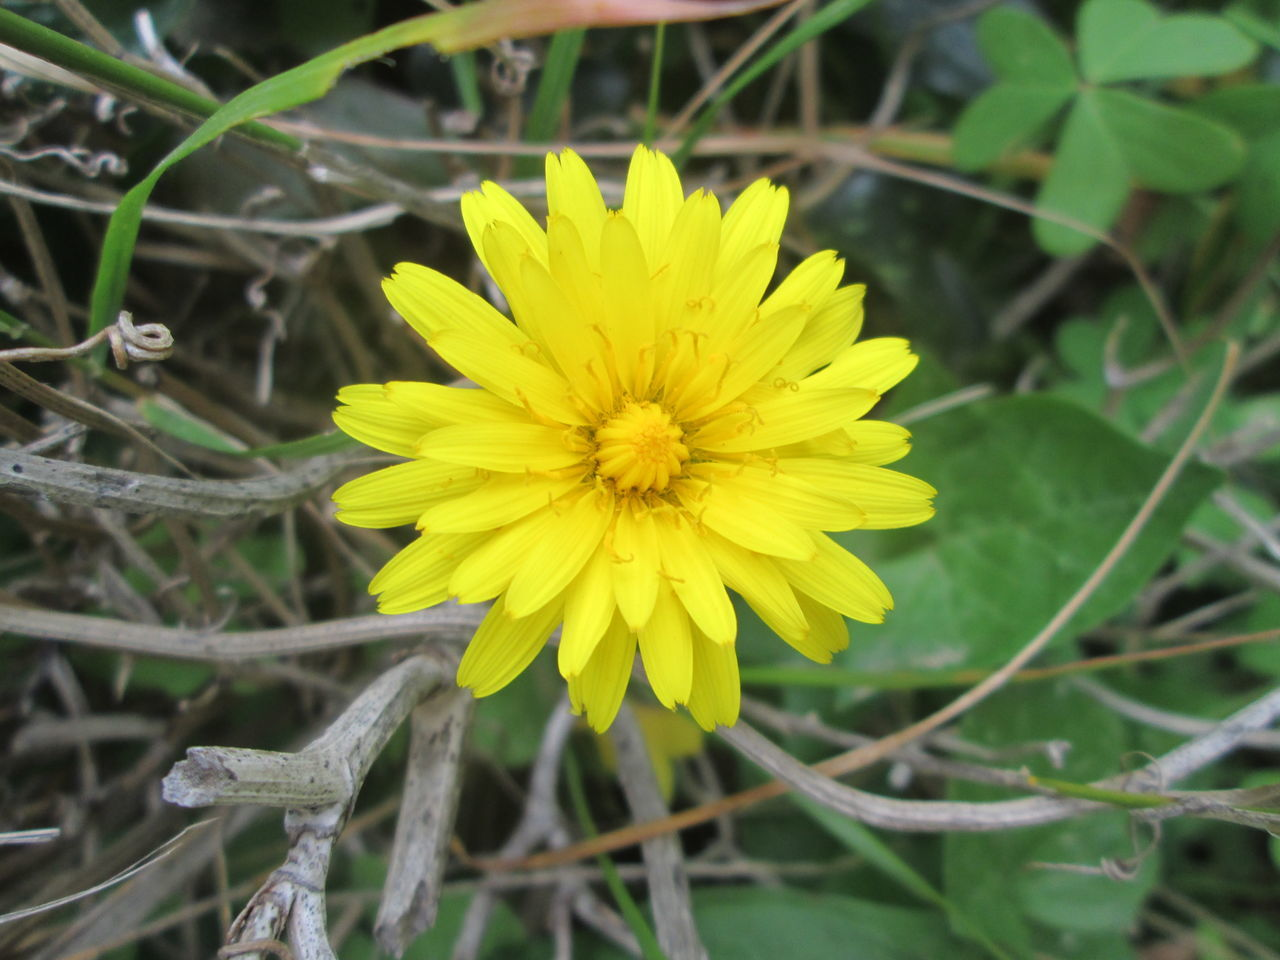 flower, yellow, fragility, nature, beauty in nature, growth, petal, plant, freshness, flower head, outdoors, close-up, no people, blooming, day